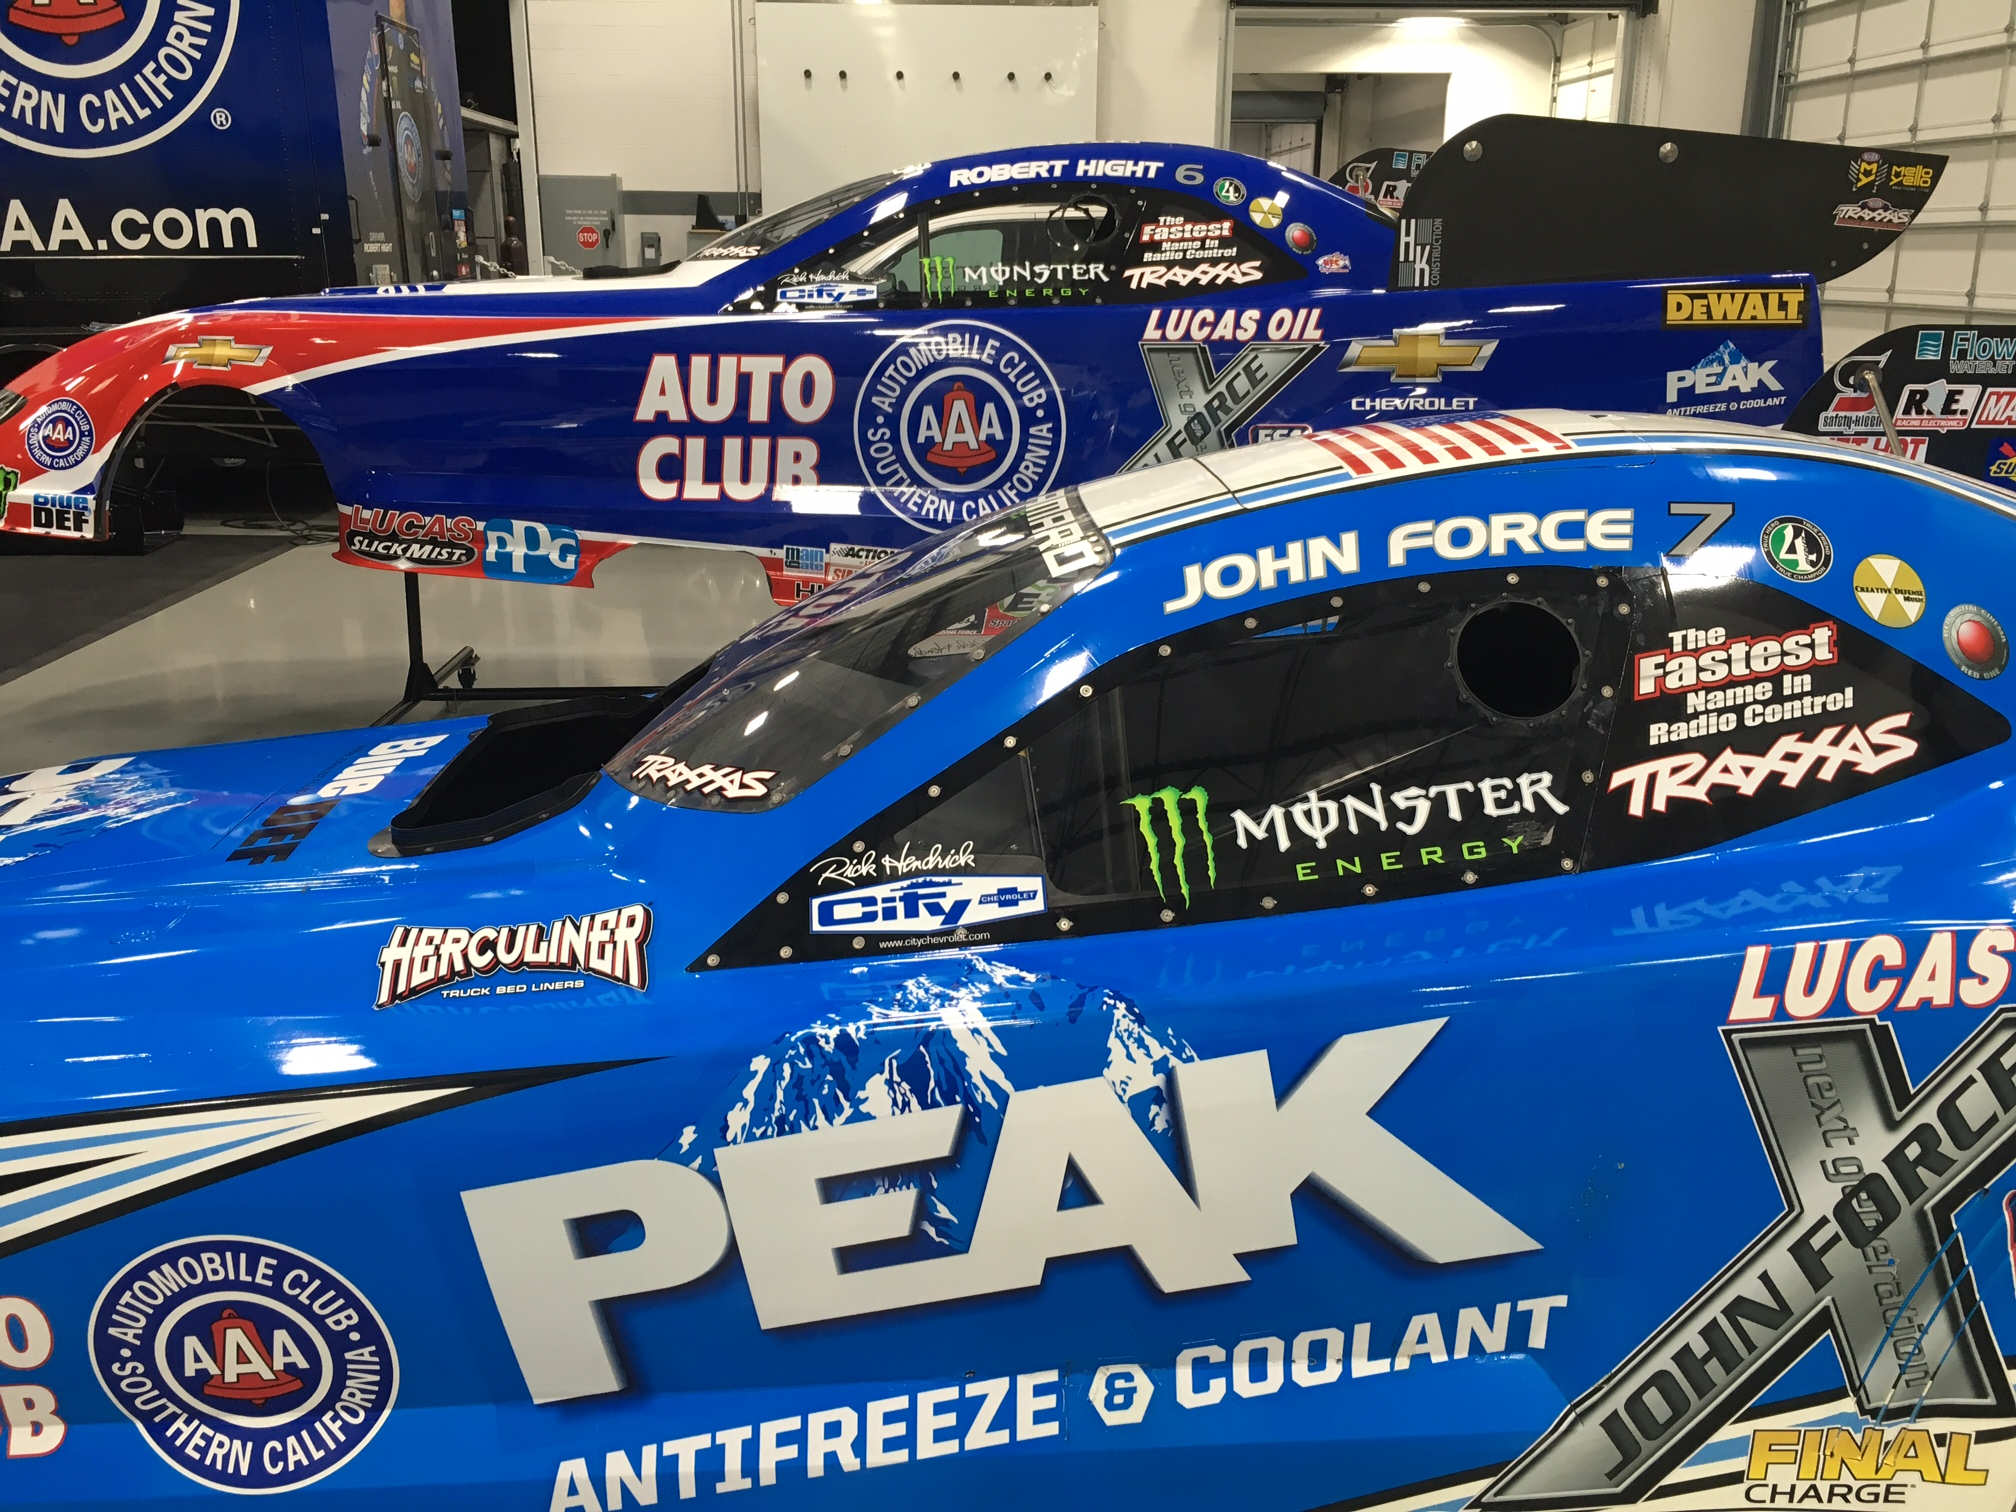 JOHN FORCE RACING TEAMS UP WITH RICK HENDRICK CITY CHEVROLET